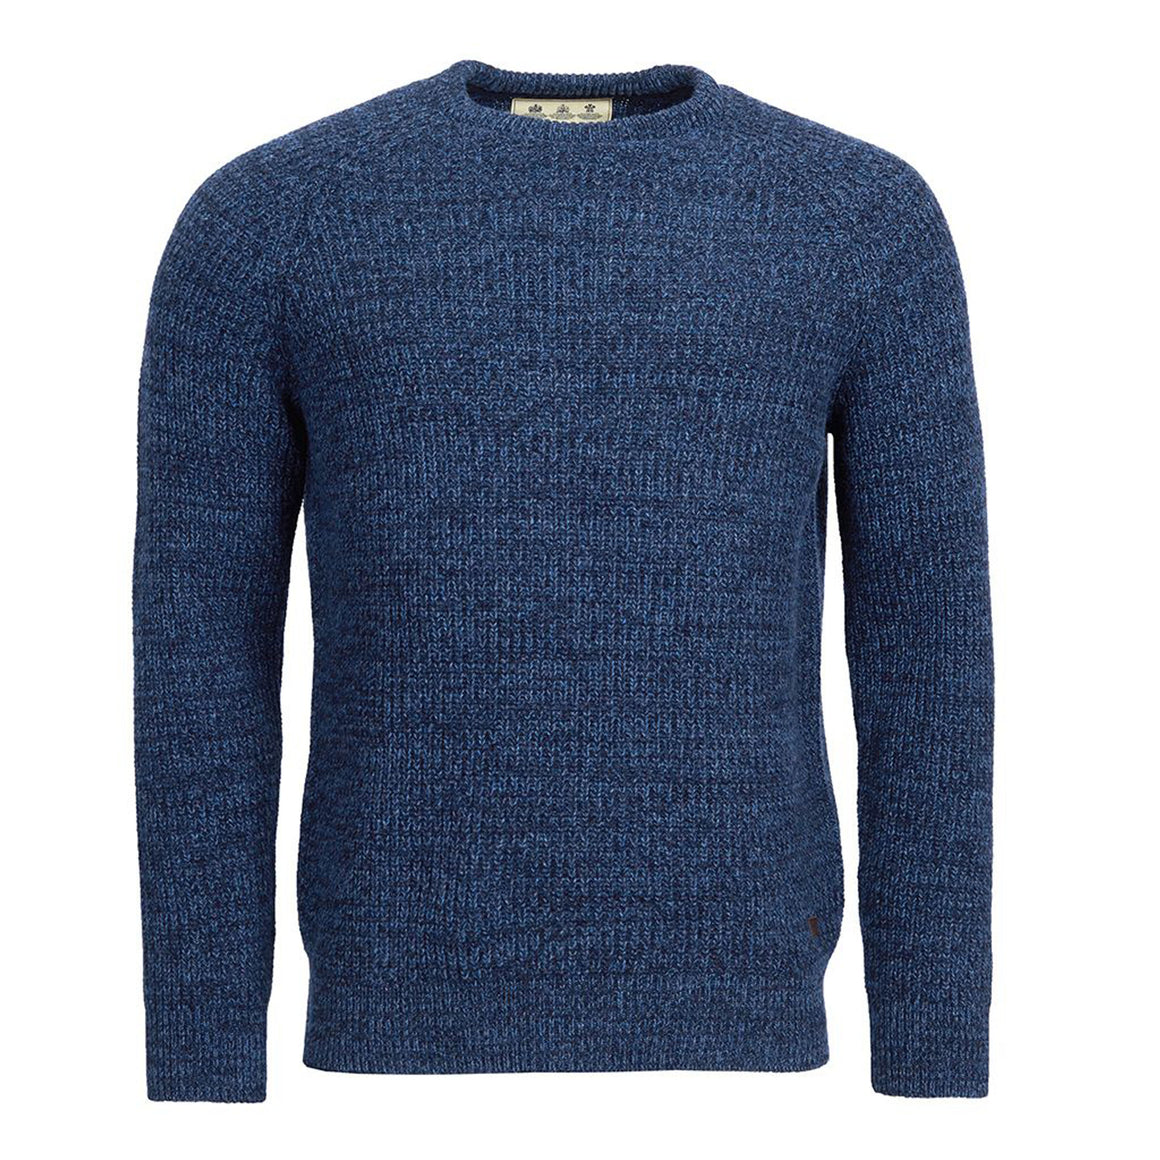 Horseford Crew Sweater for Men in Navy